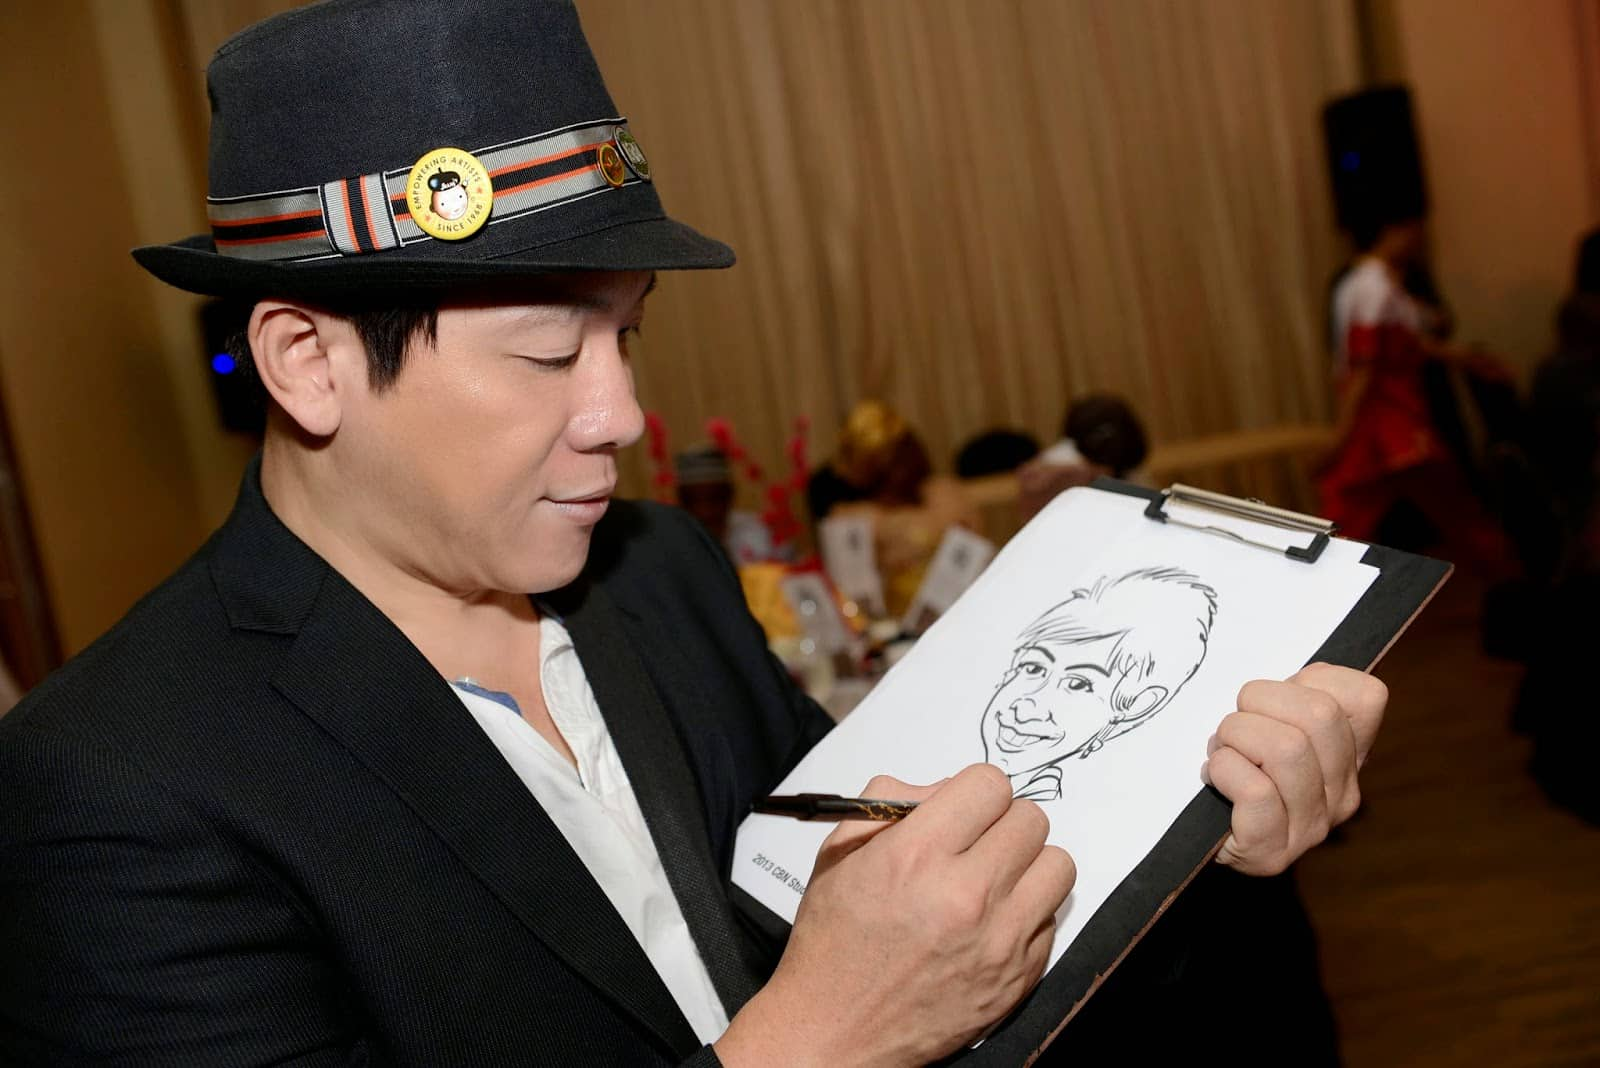 Caricature Services Singapore